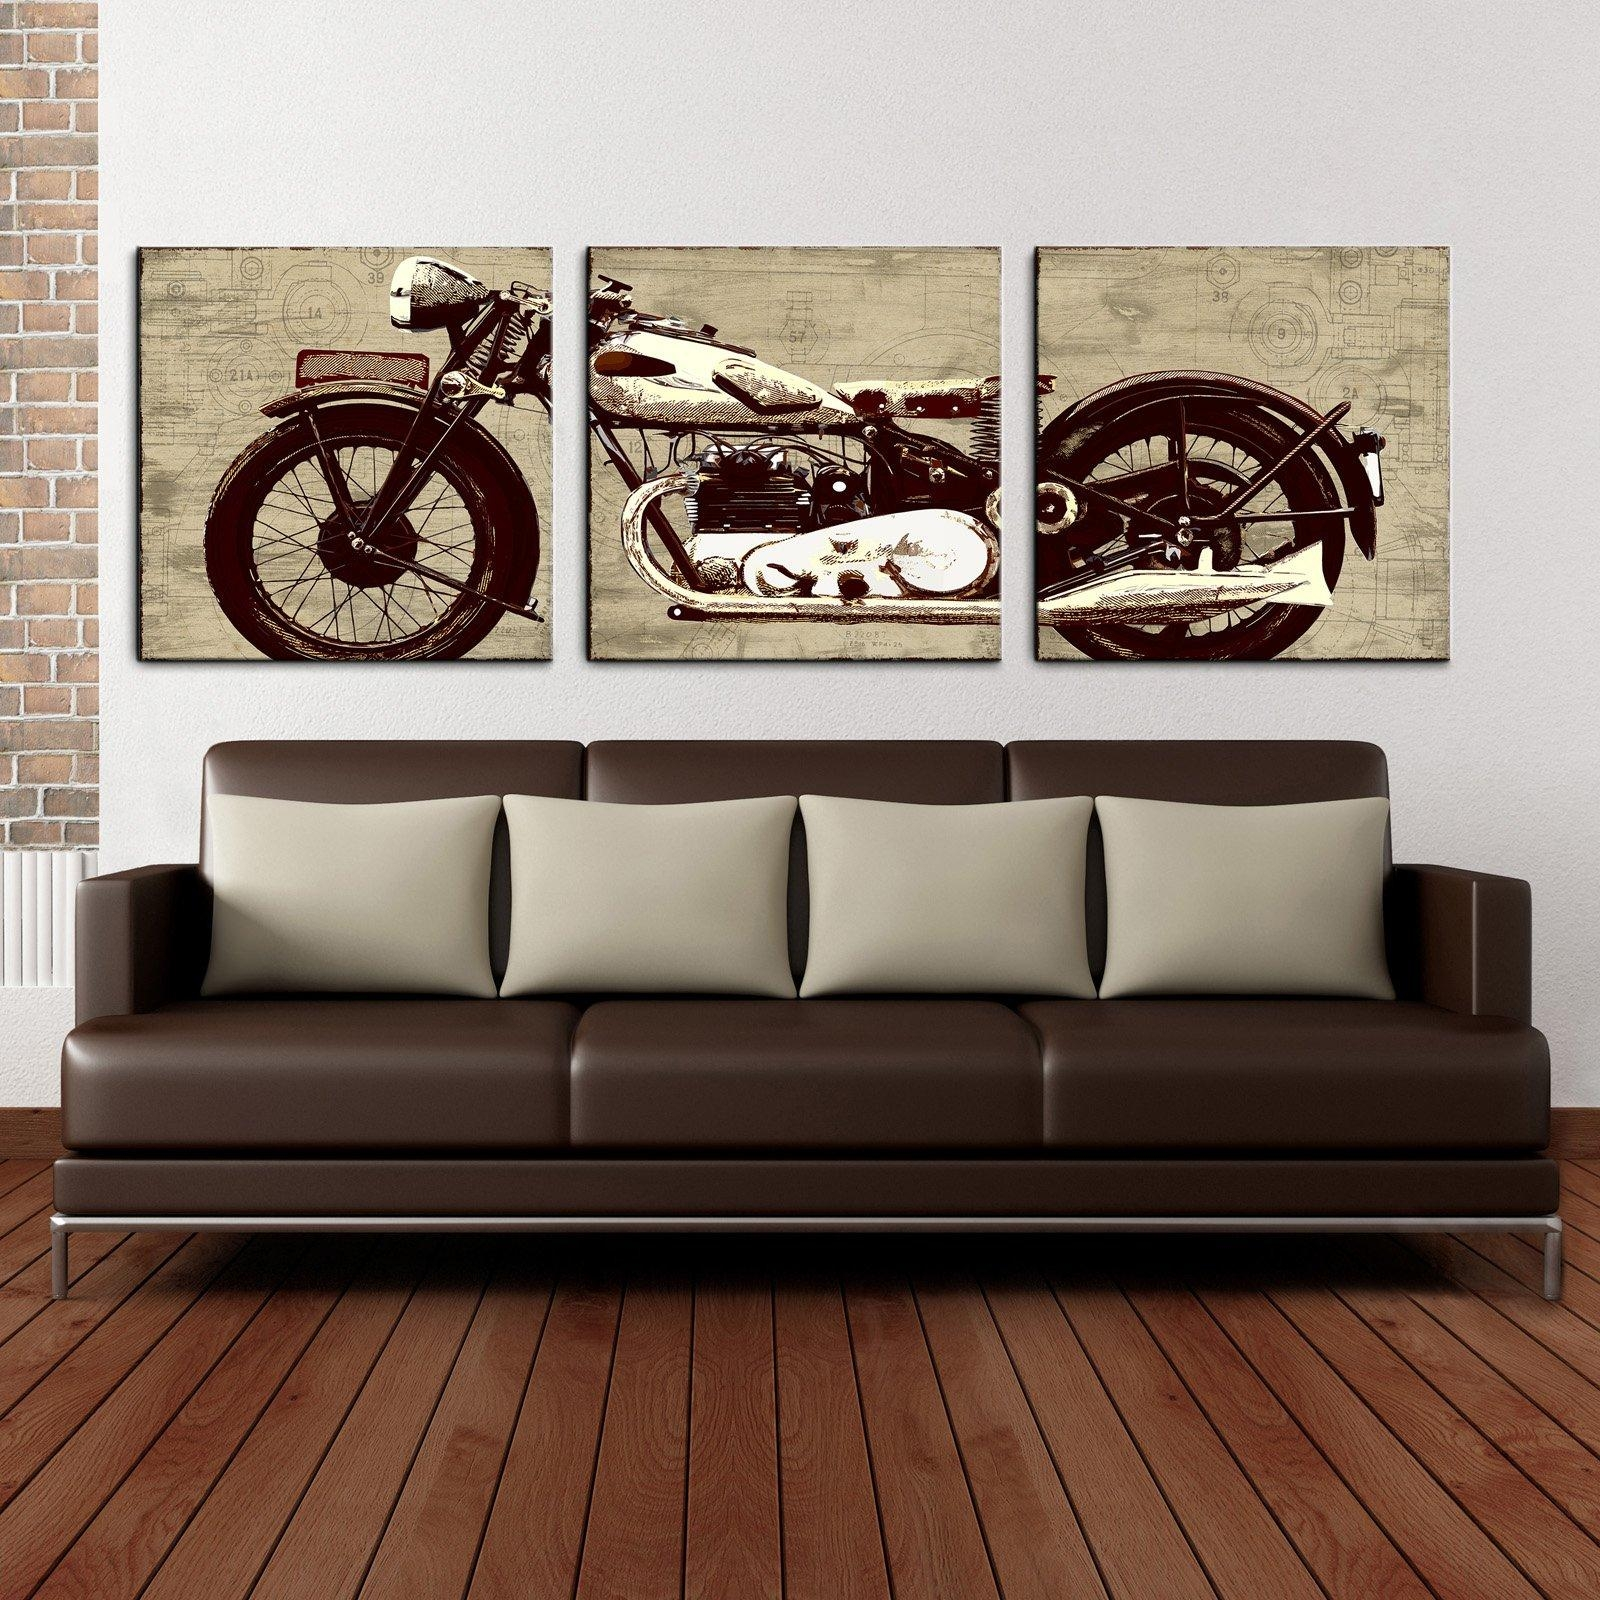 Motorcycle 24 X 72 Canvas Art Print Triptych | Hayneedle Inside Triptych Art For Sale (View 9 of 20)